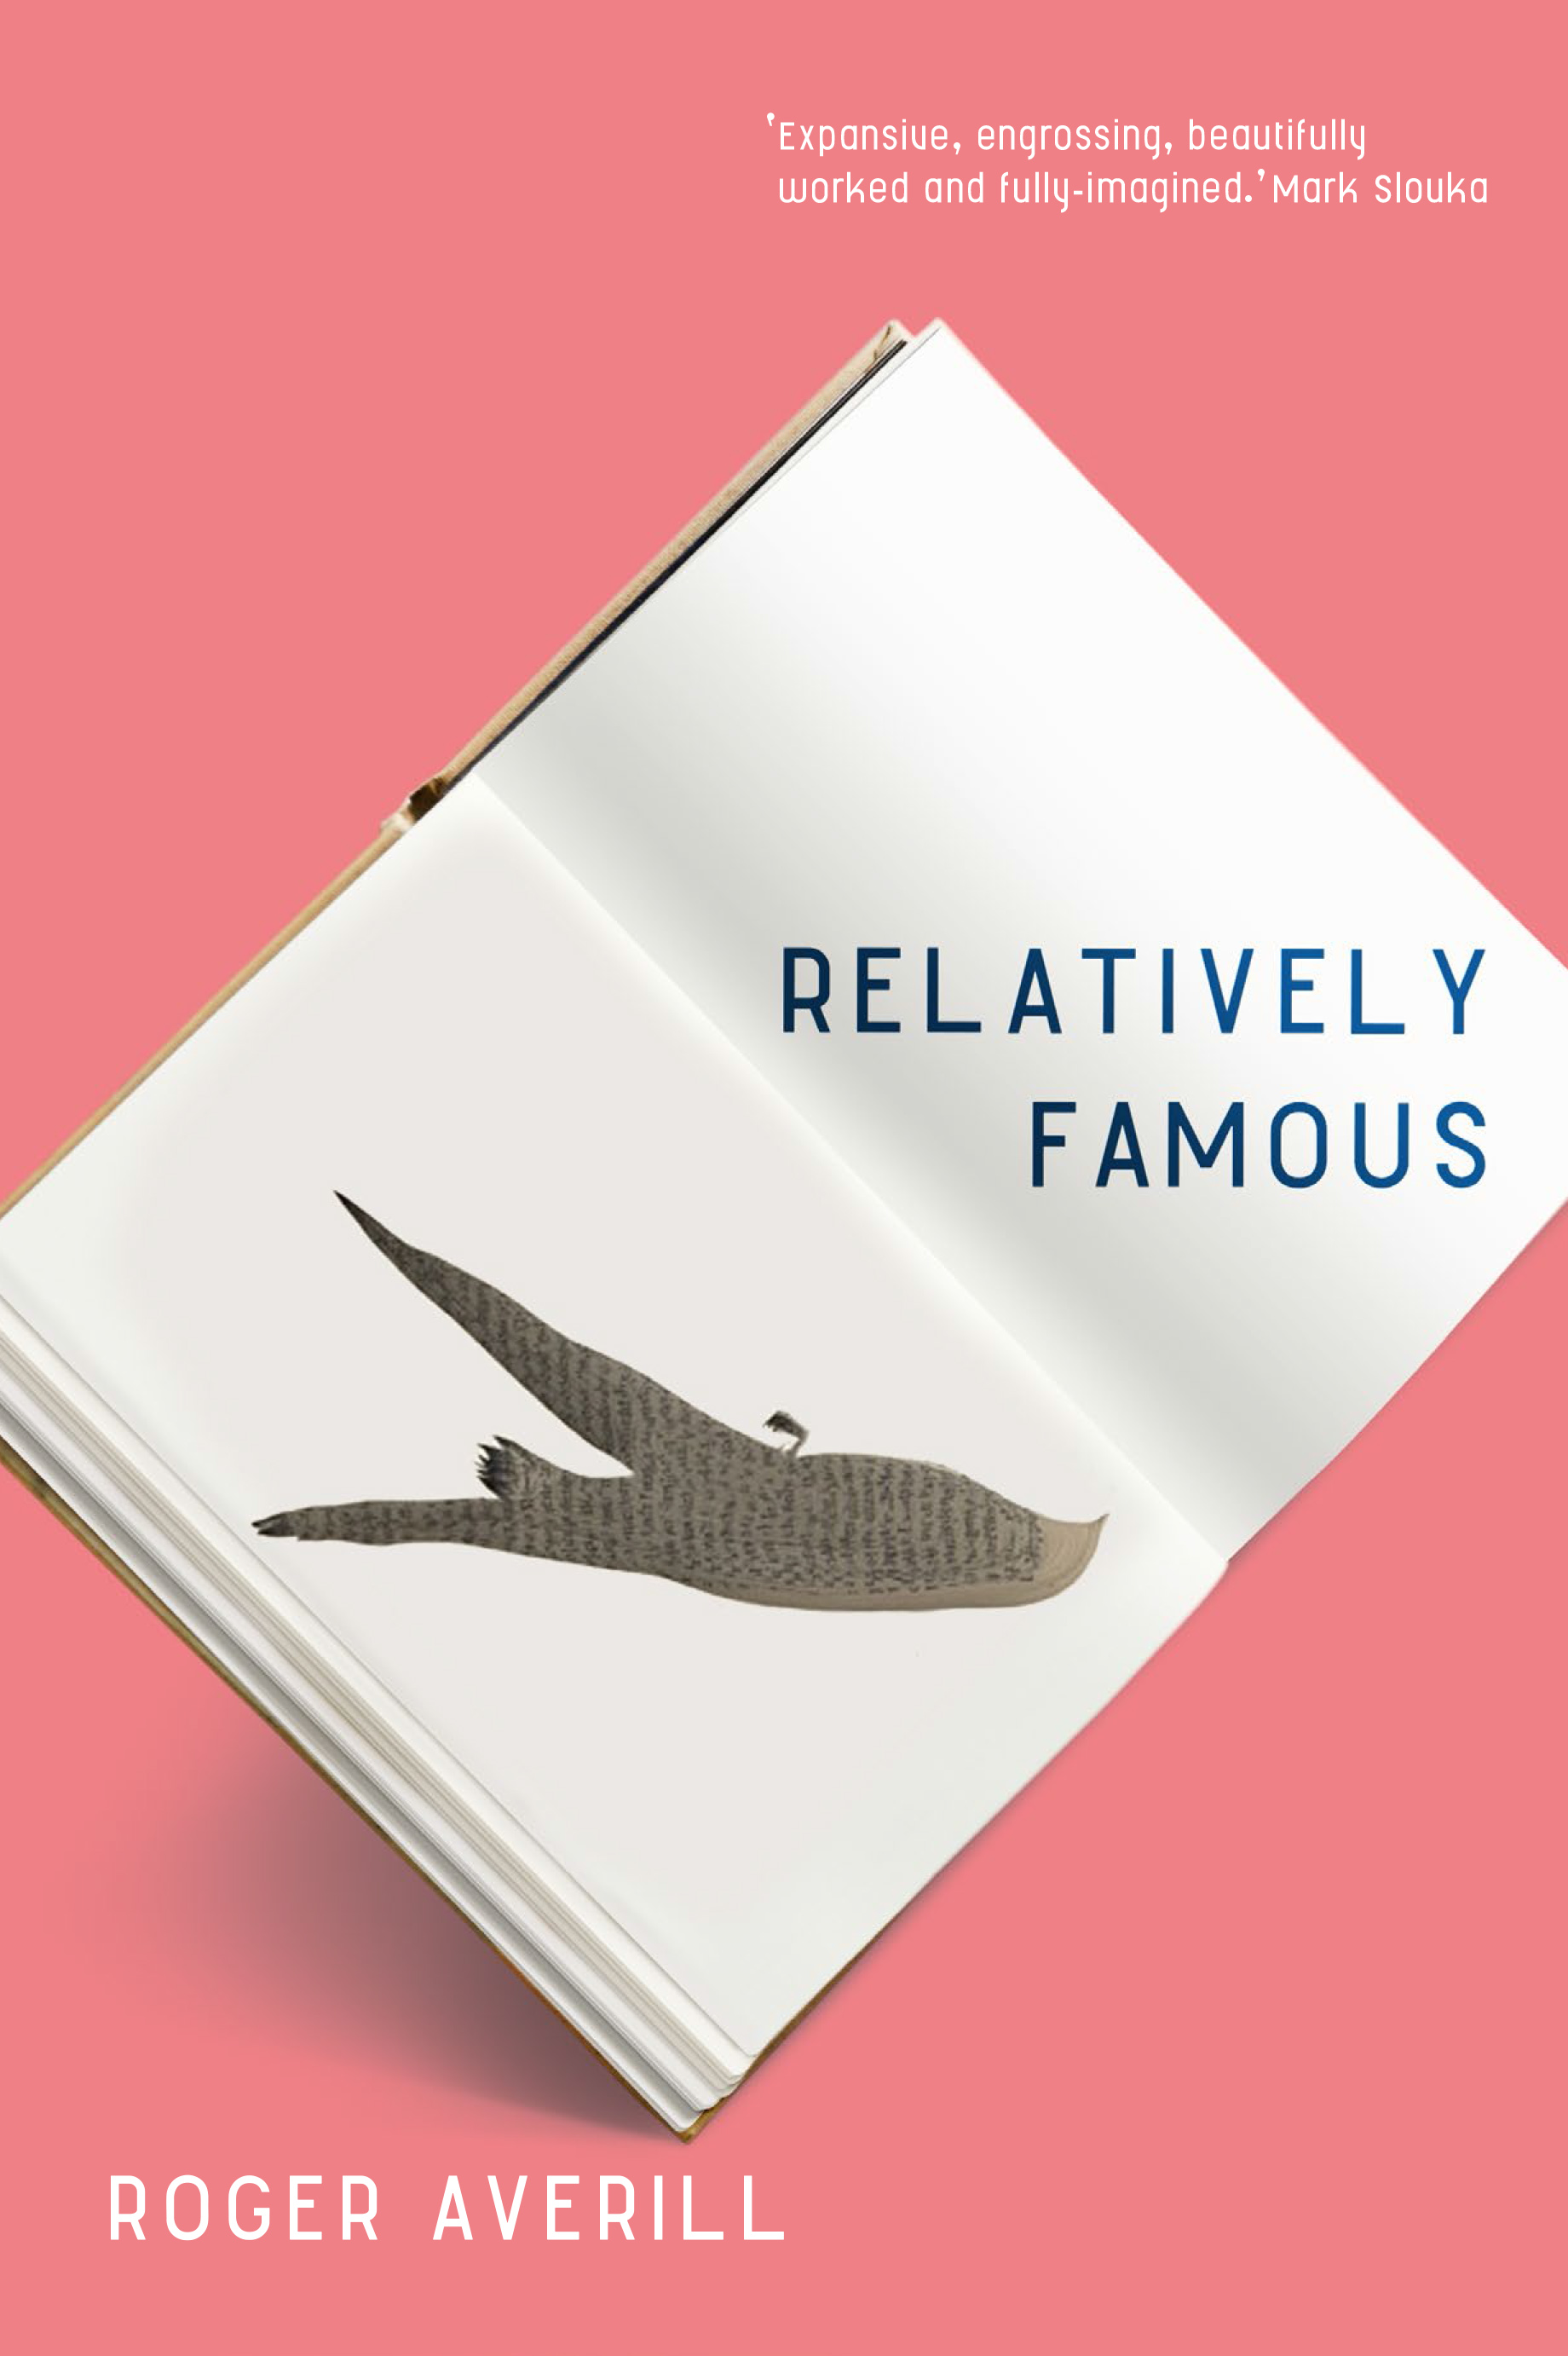 Launch of Relatively Famous